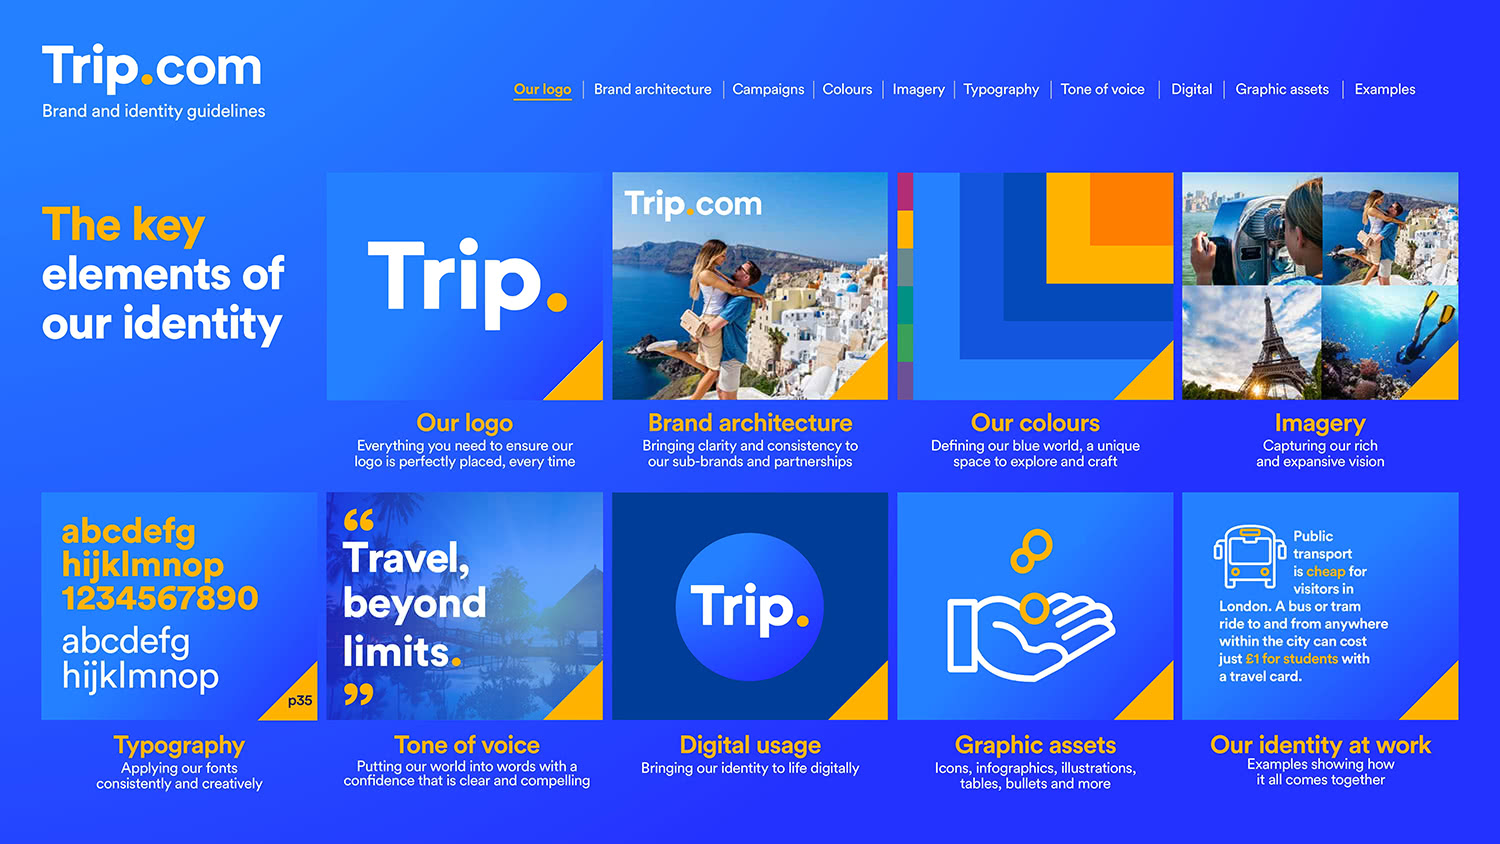 Proposed Trip.com key elements